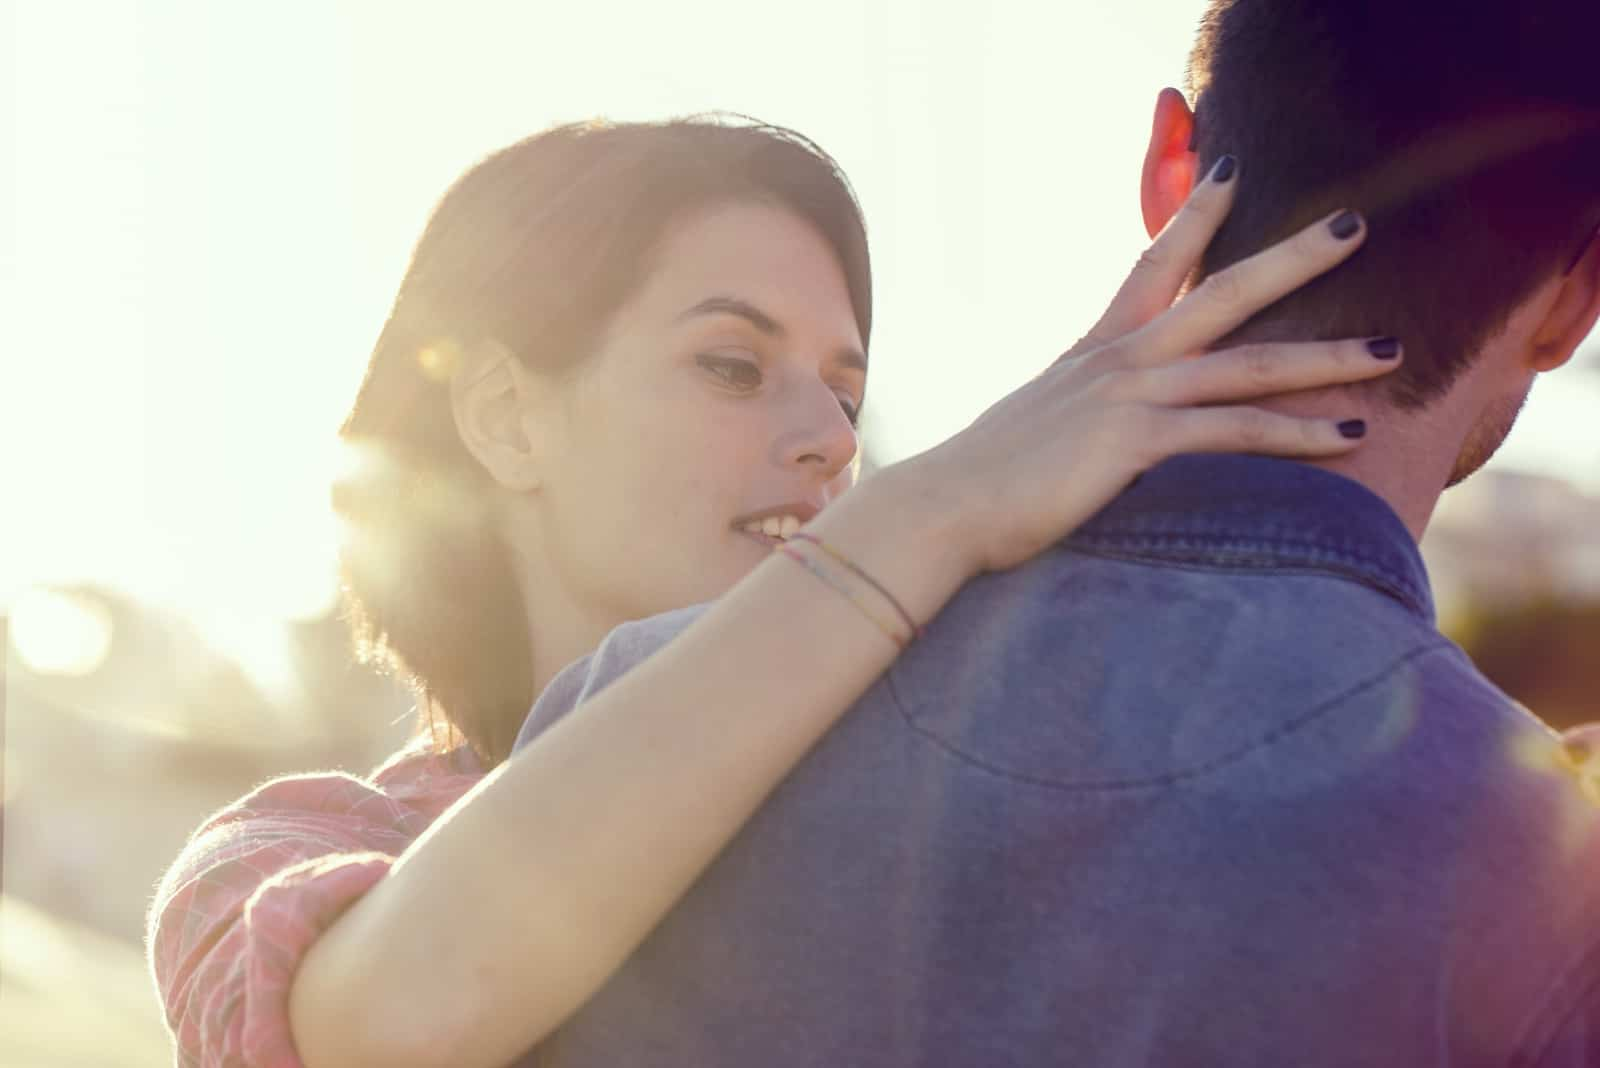 woman touching man's neck while standing outdoor